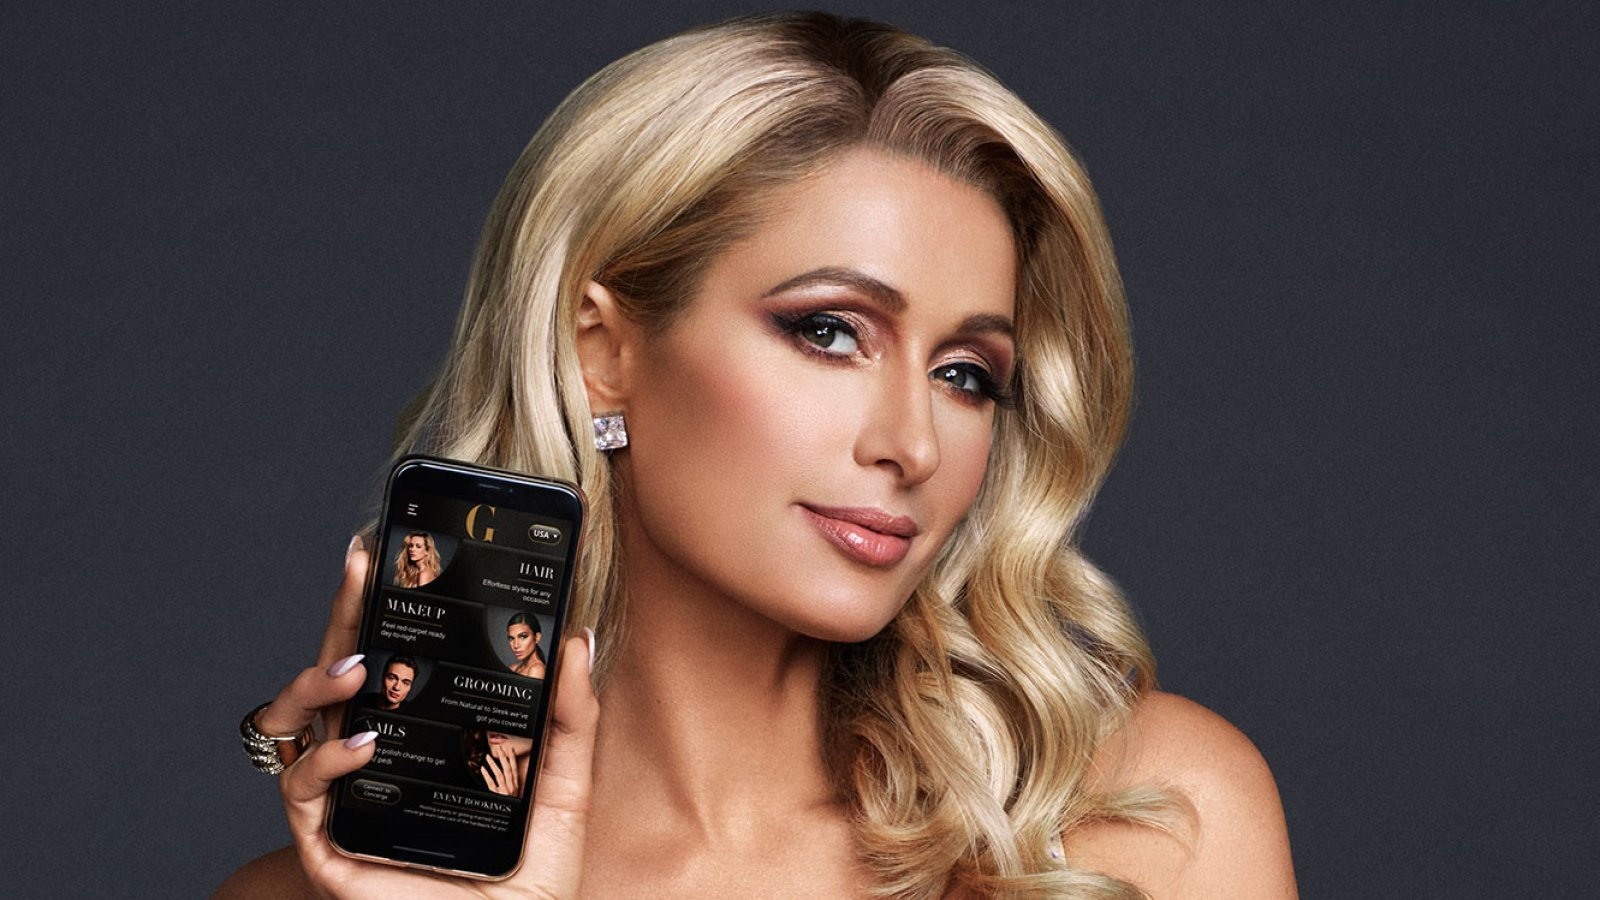 bfb3377bc1a9e Paris Hilton on Investing in The Glam App and the Fashion Advice She's  Exchanged With Kim Kardashian Over the Years